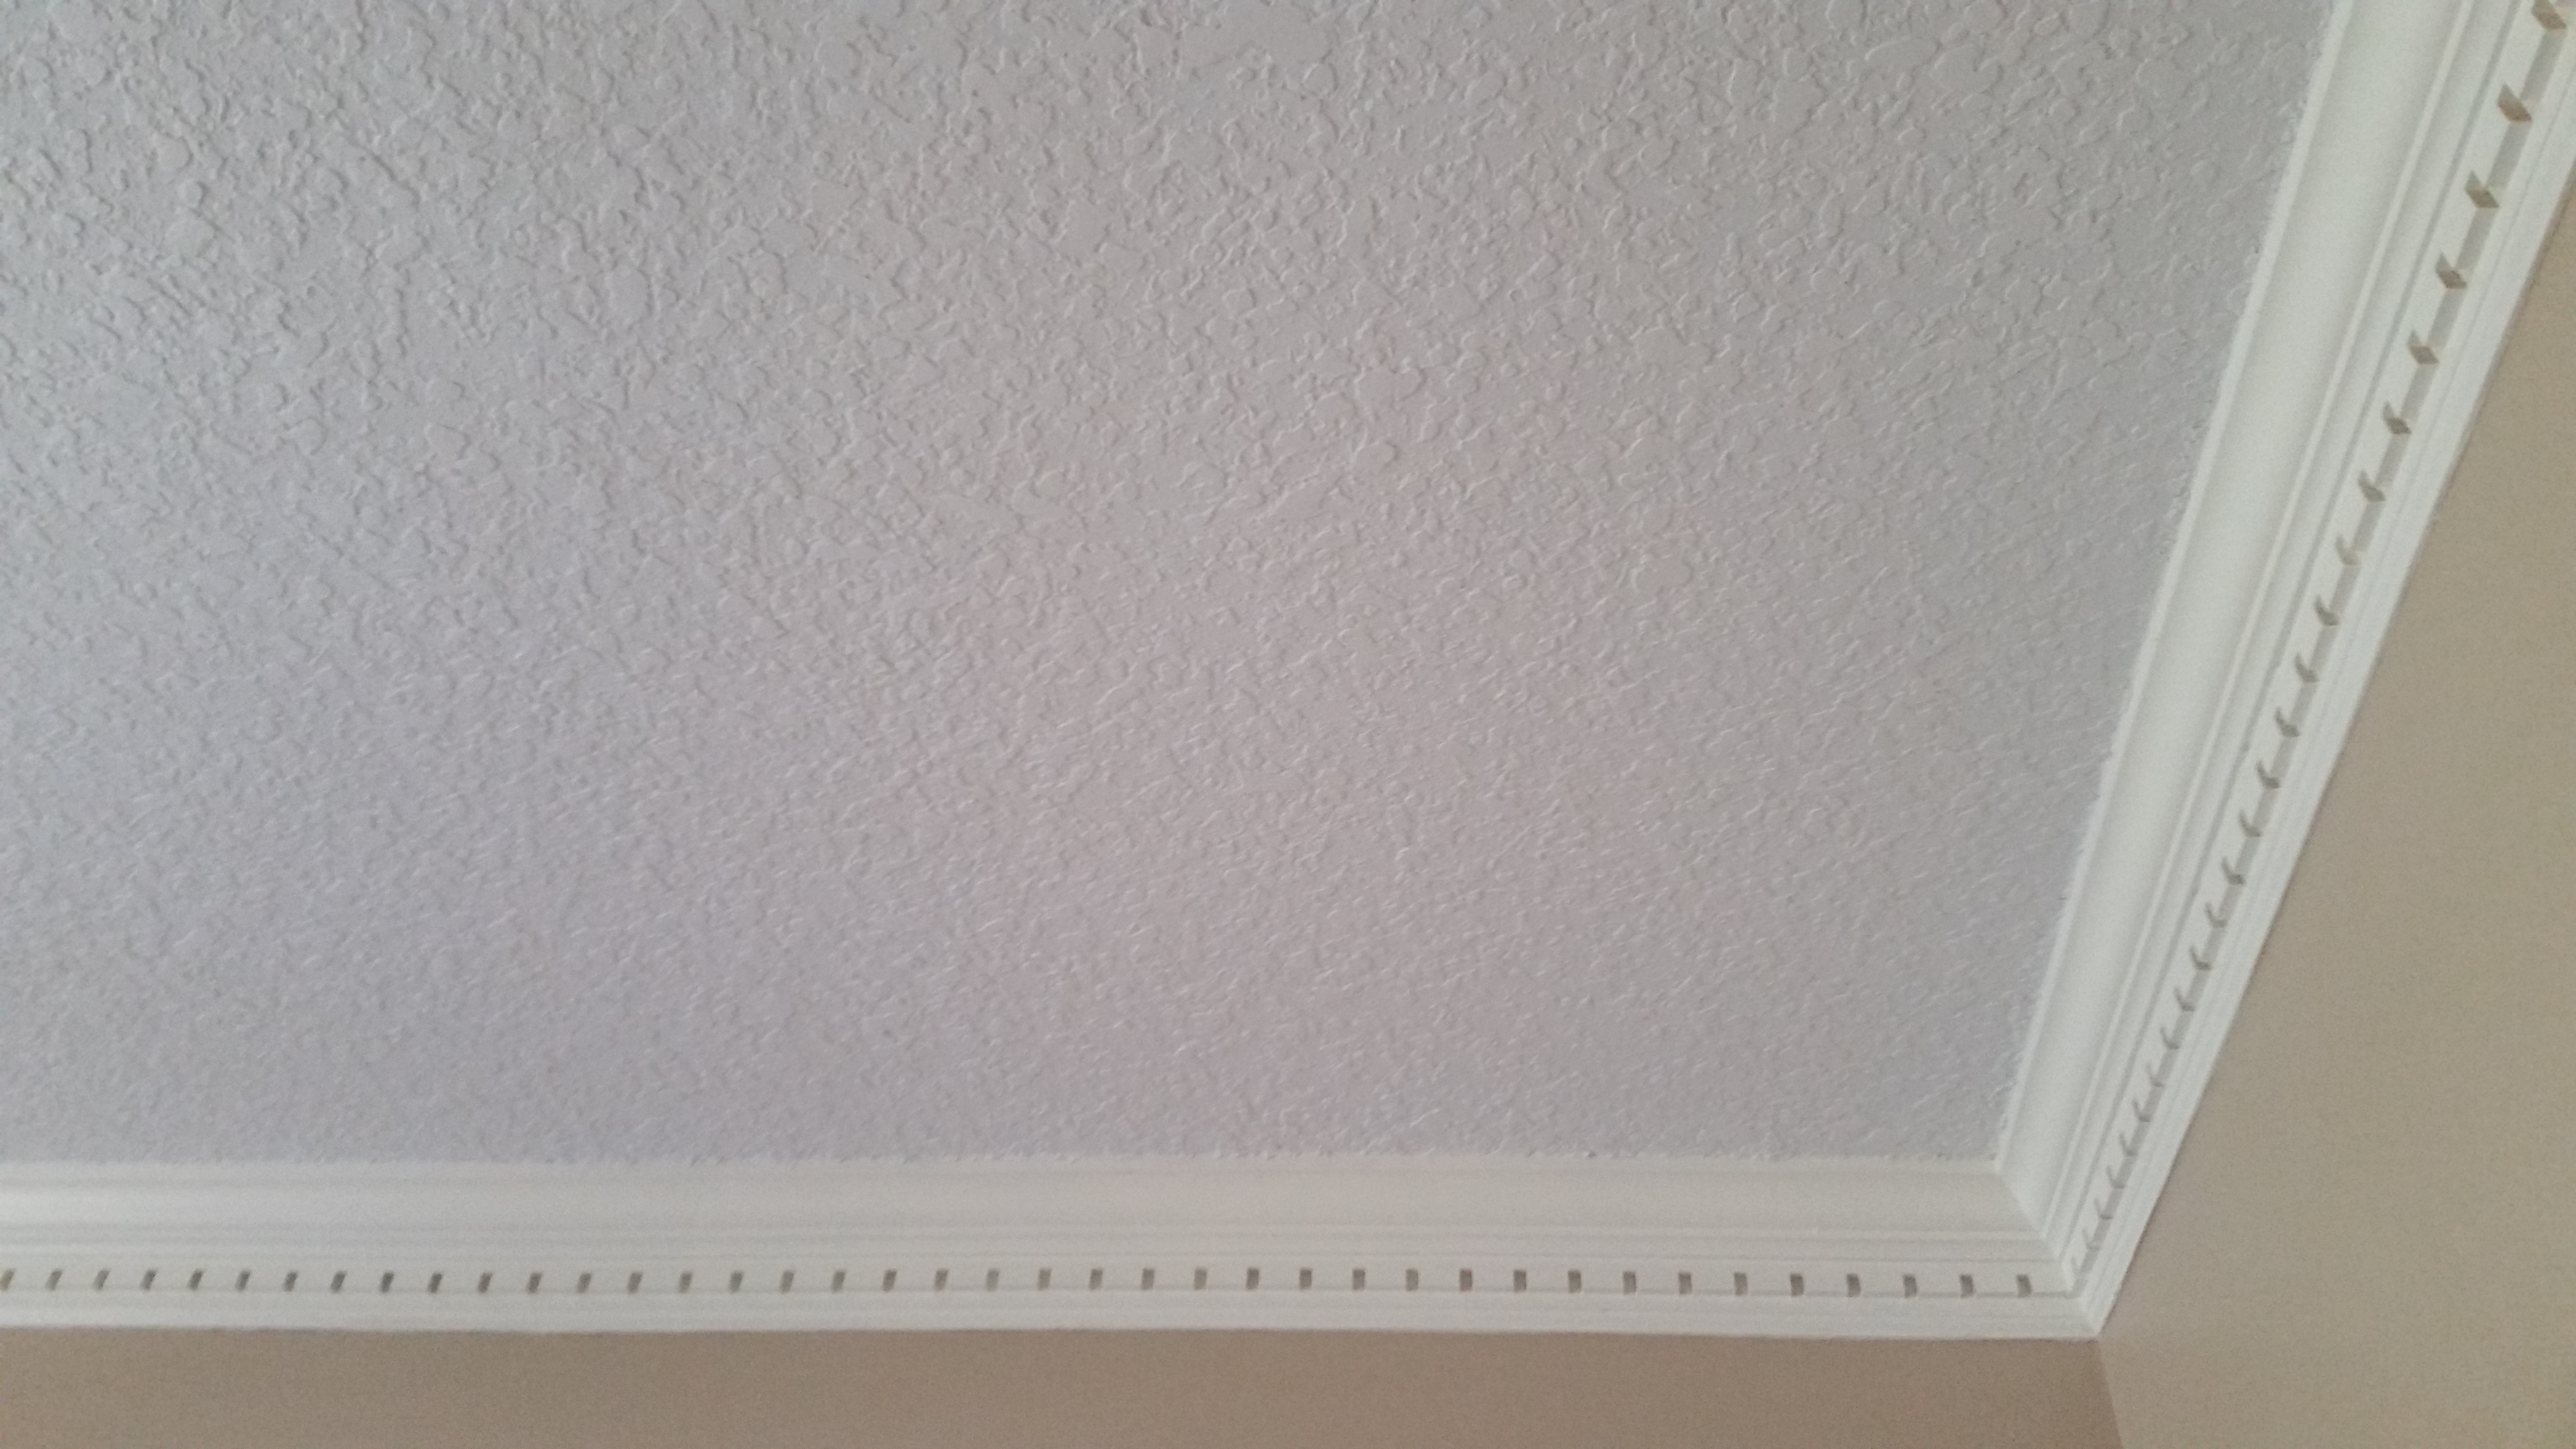 Knockdown Textured Ceiling Ceiling Knockdown Conversion